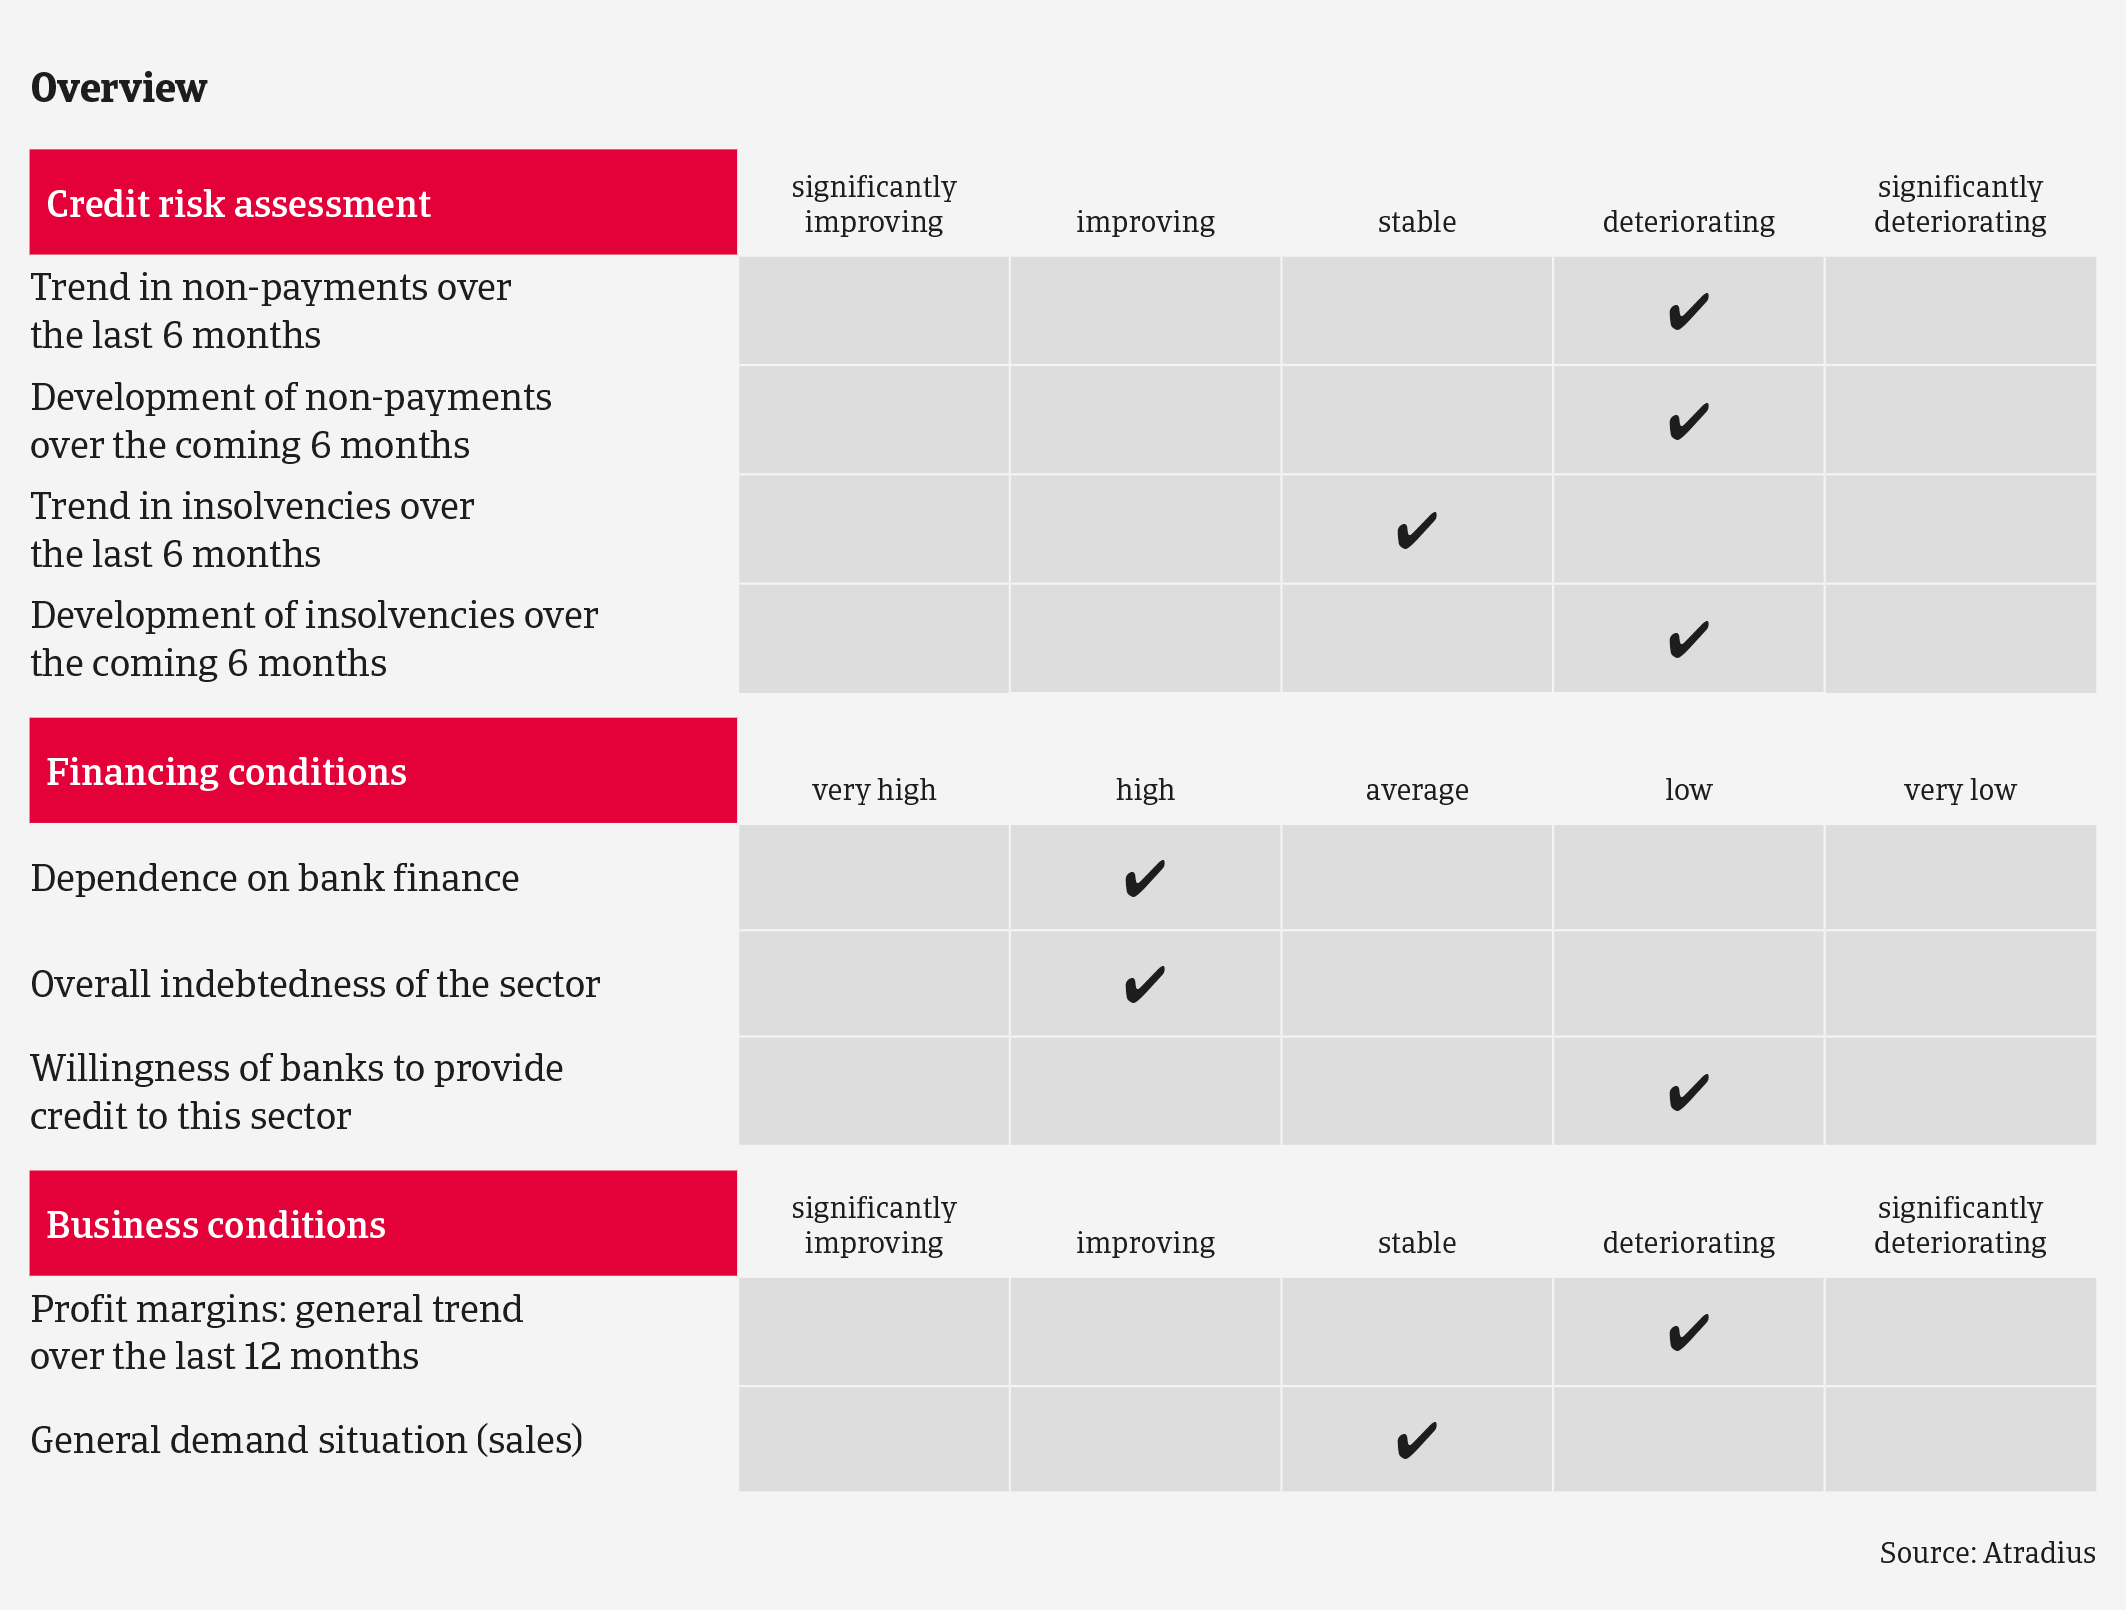 Overview of German food sector - Atradius Market Monitor